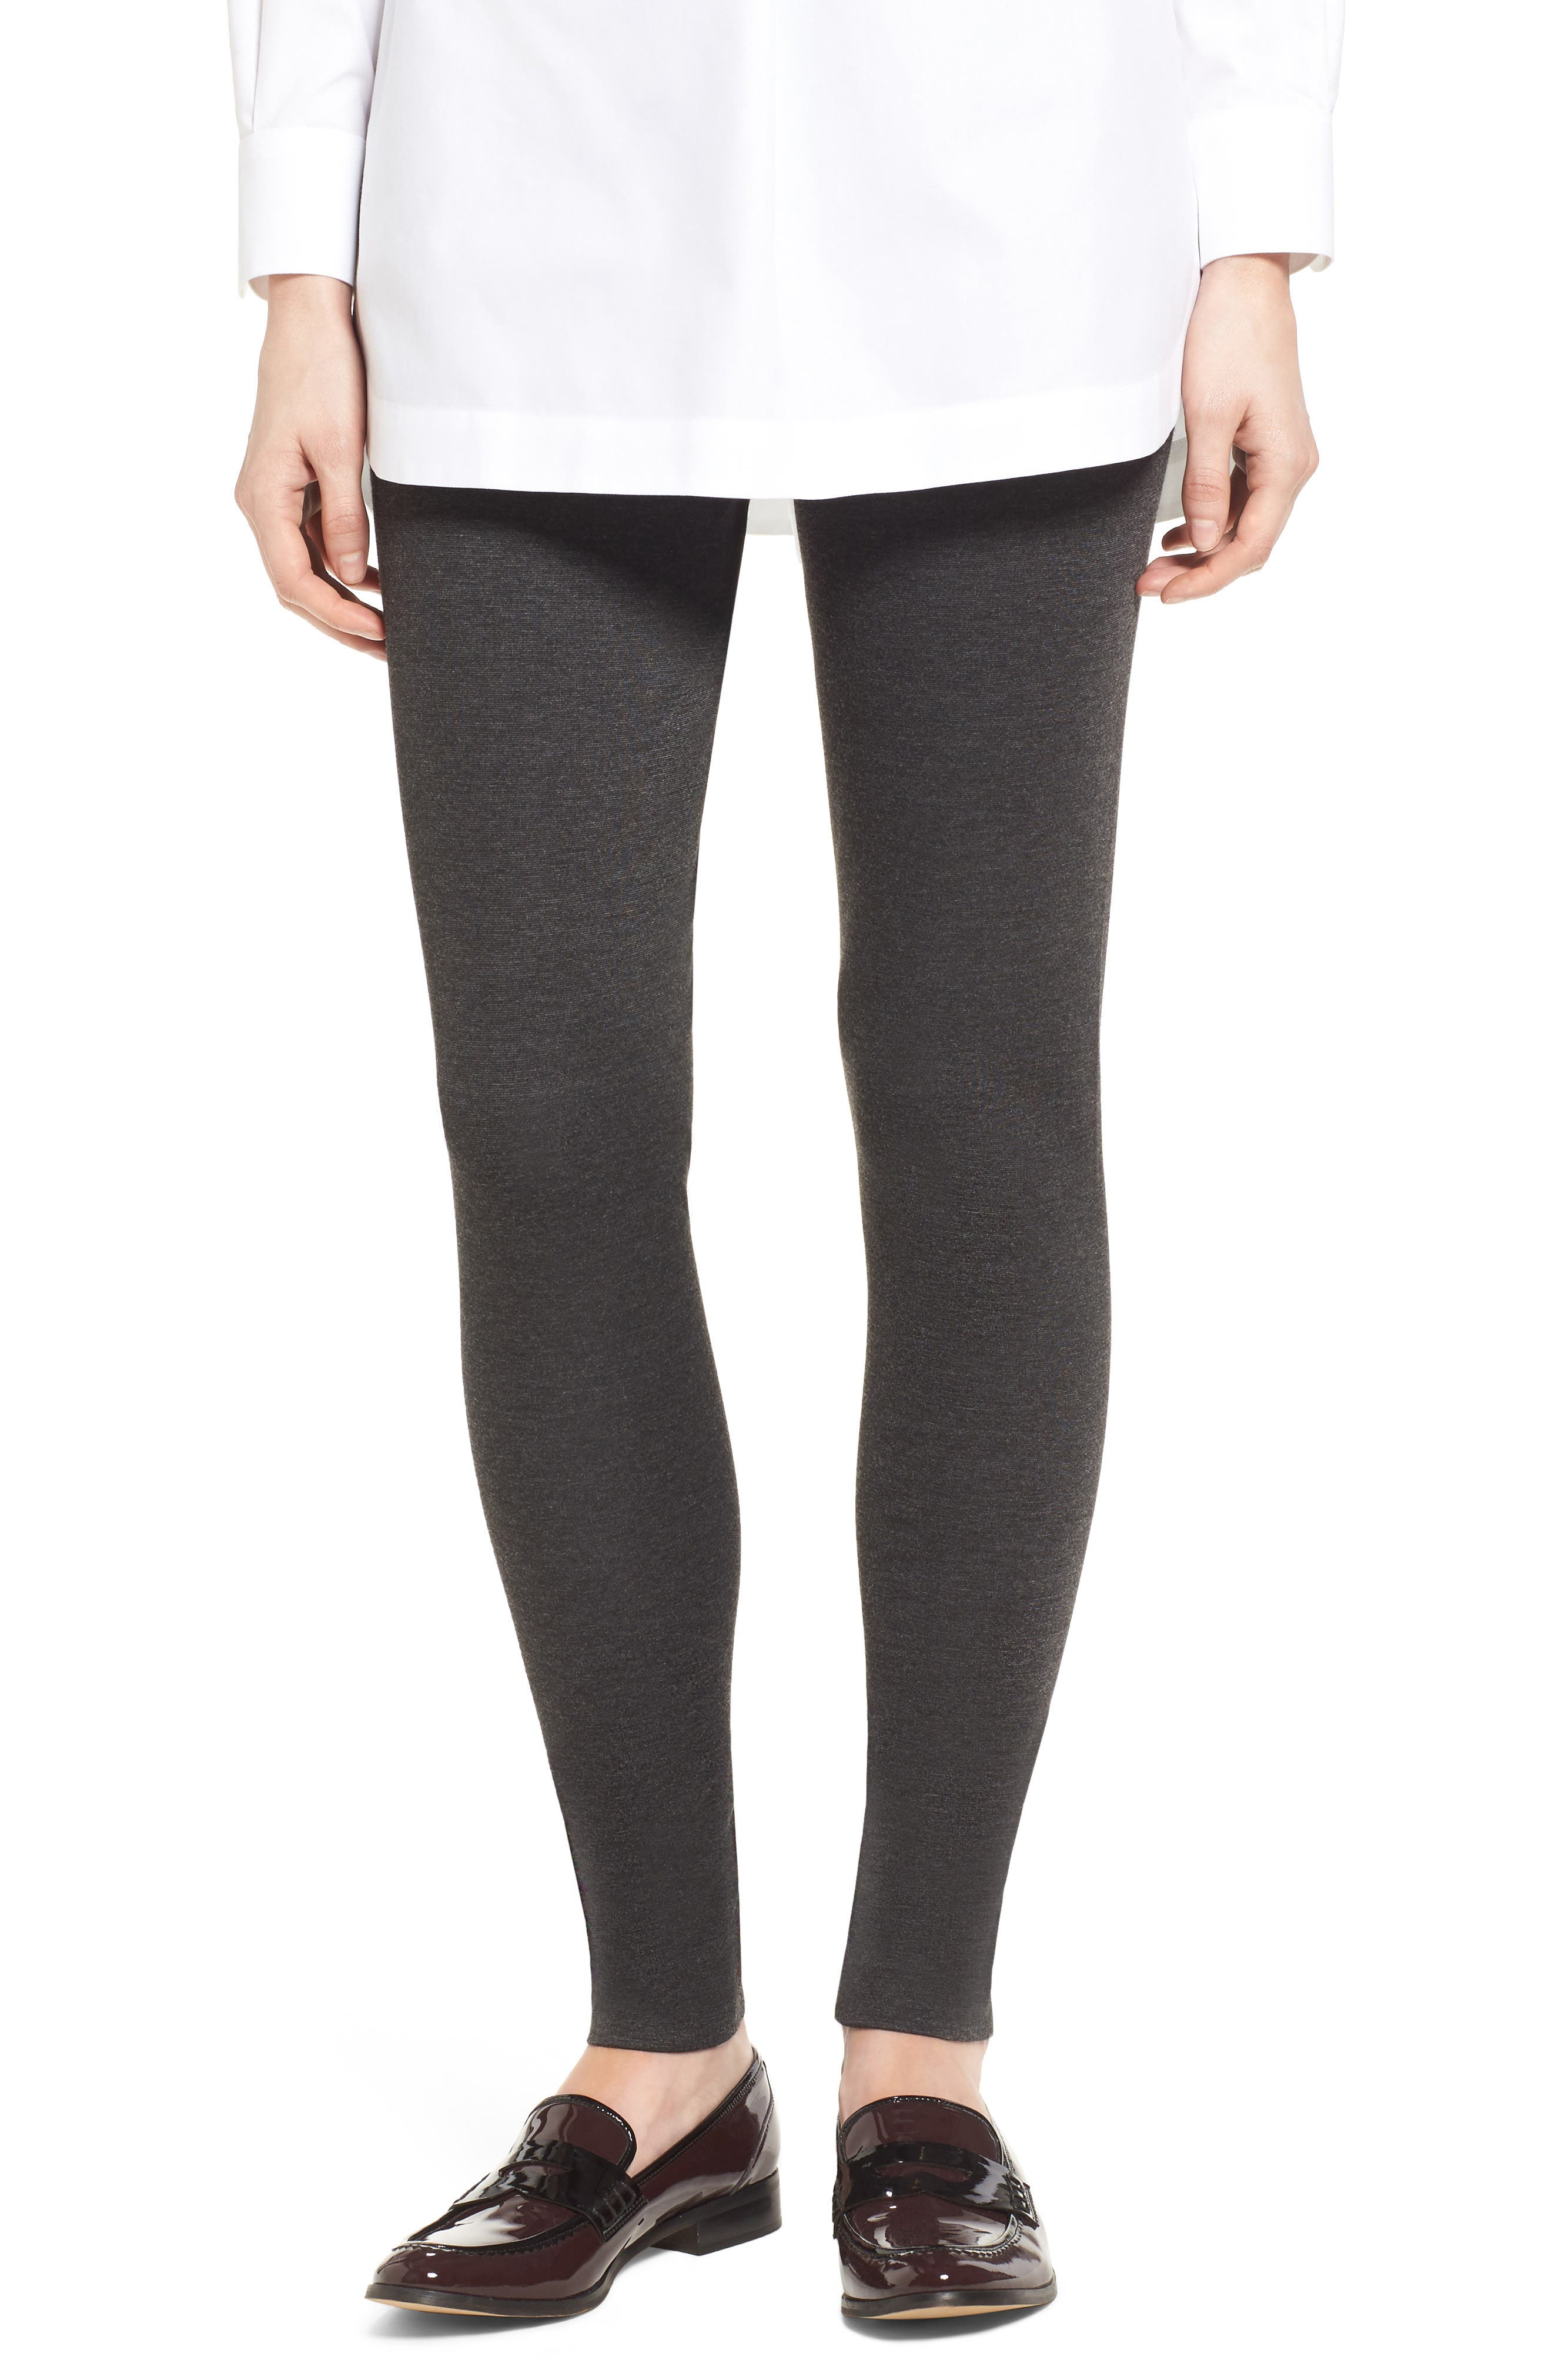 Two by Vince Camuto Seamed Back Leggings,                             Main thumbnail 1, color,                             DARK HEATHER GREY